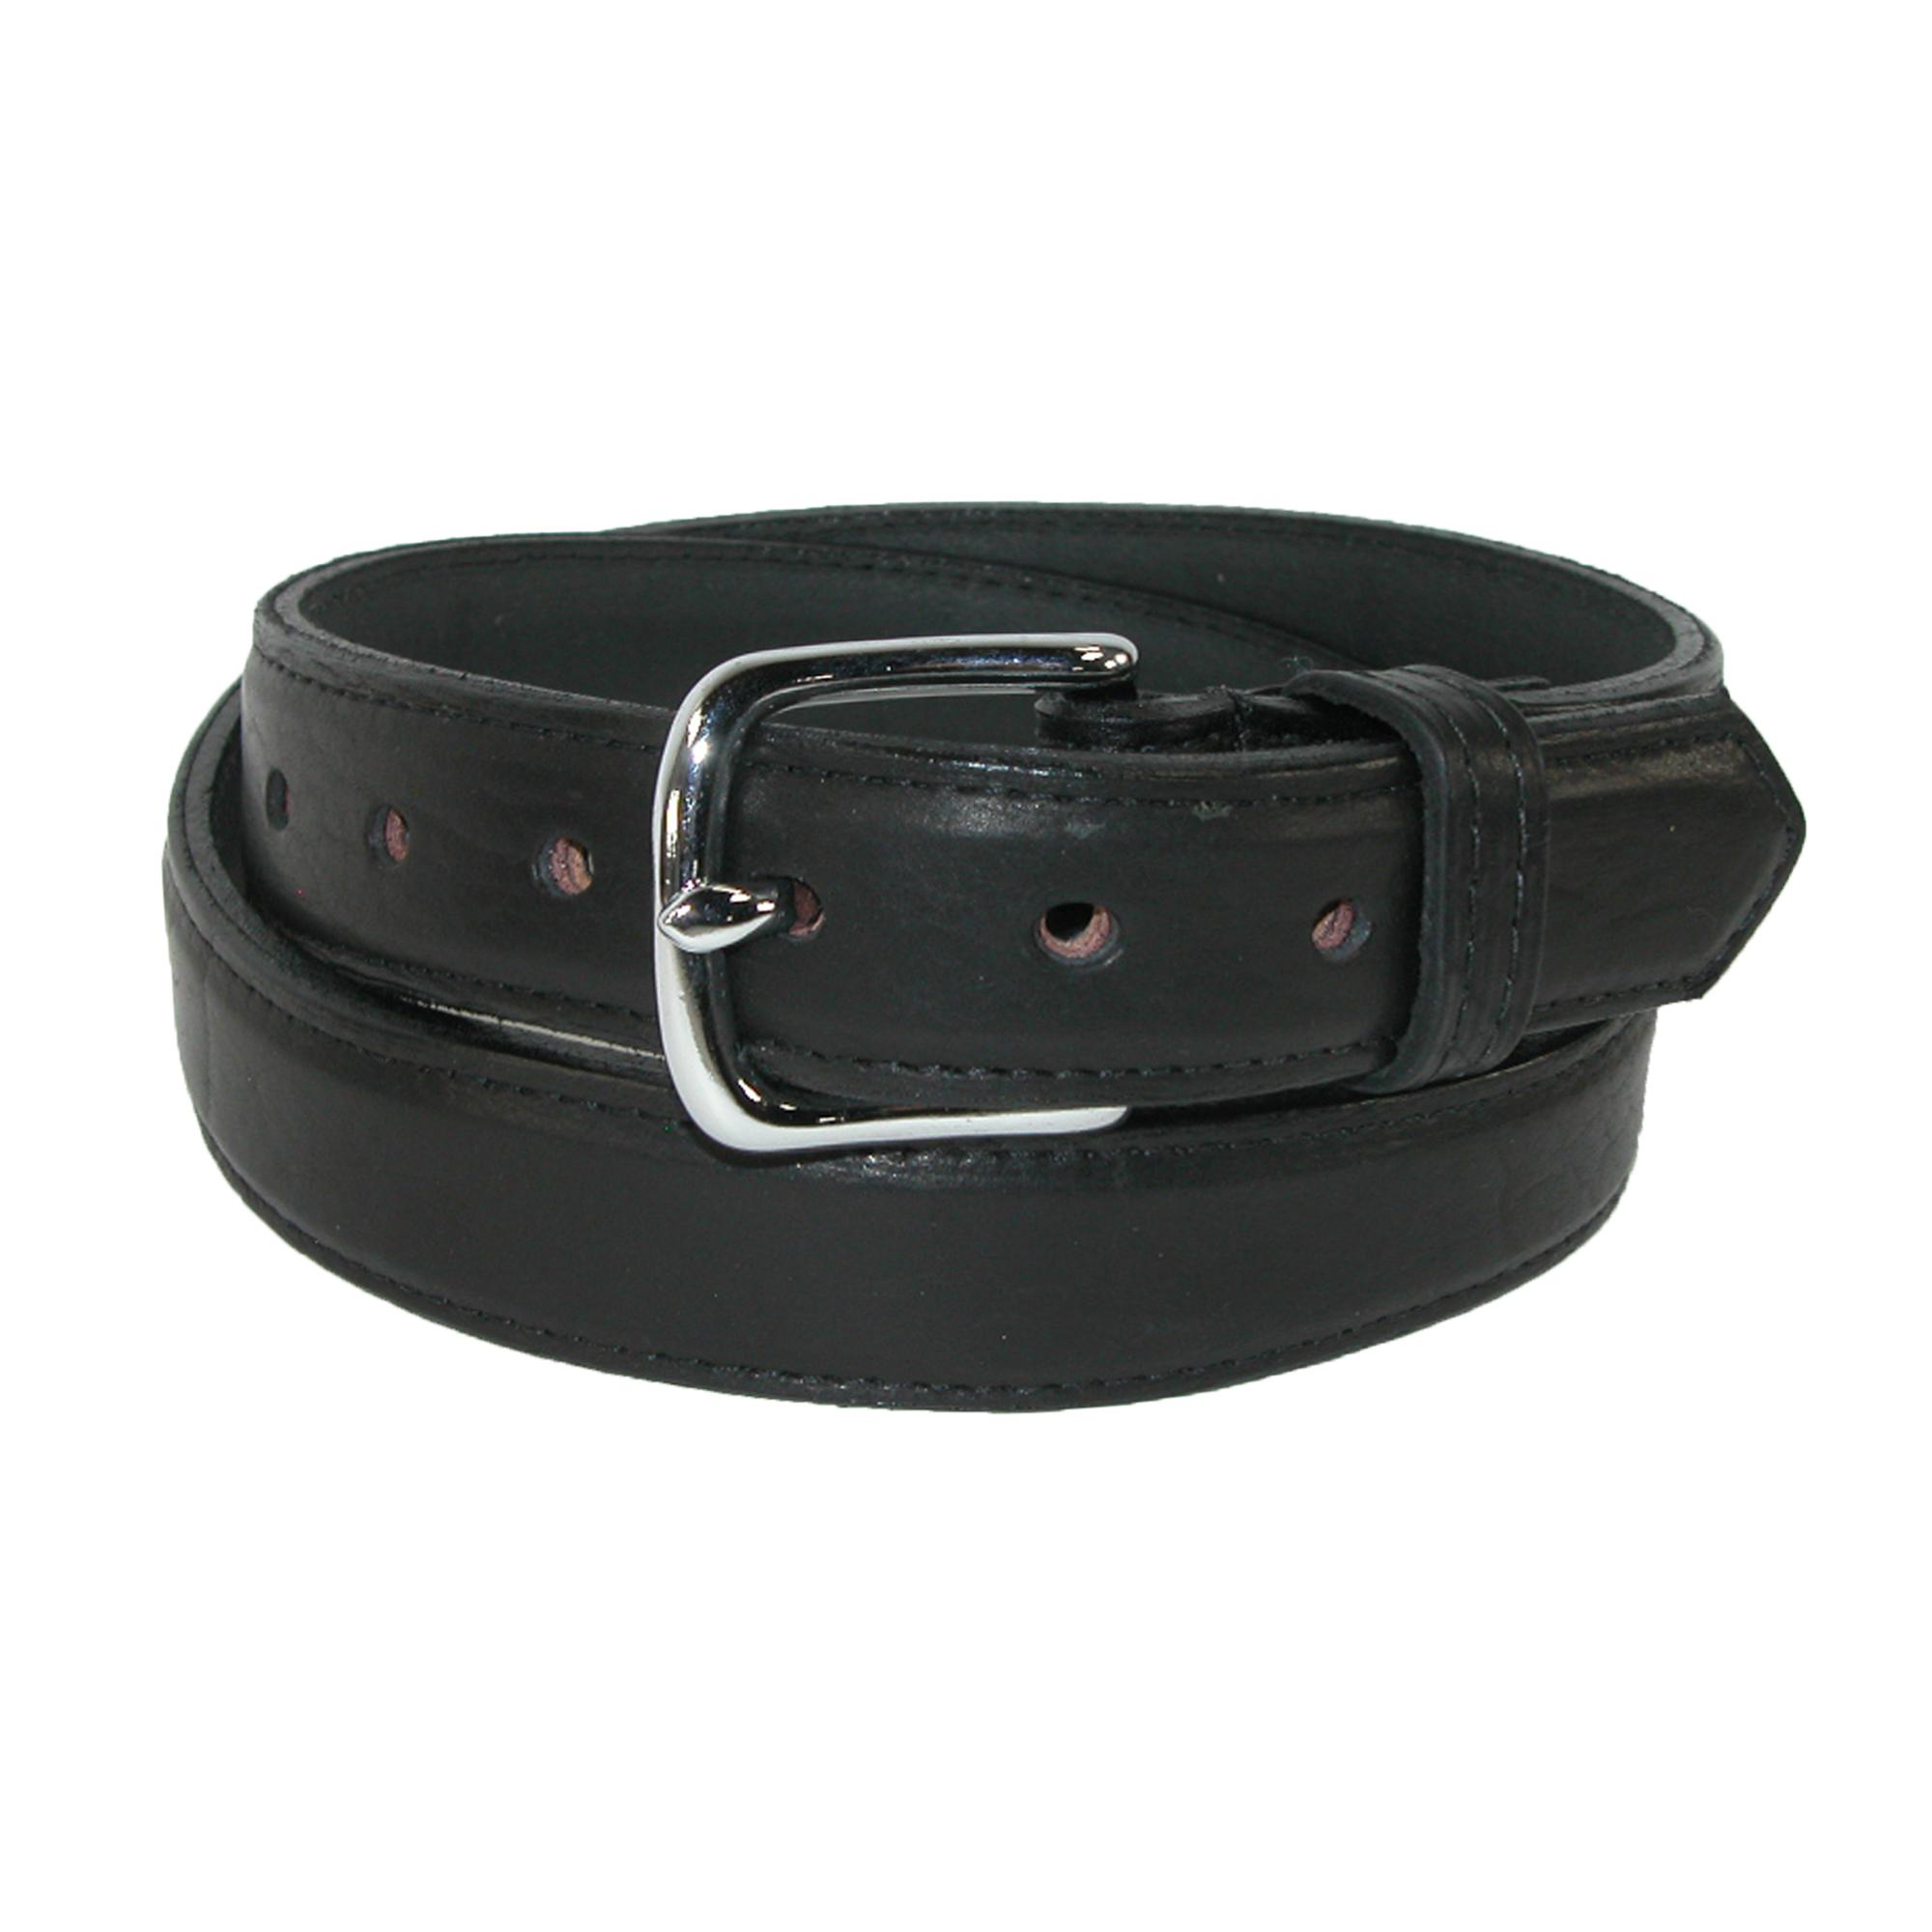 Boston Leather Men's Big & Tall Bison Leather 1.25 Inch Dress Belt